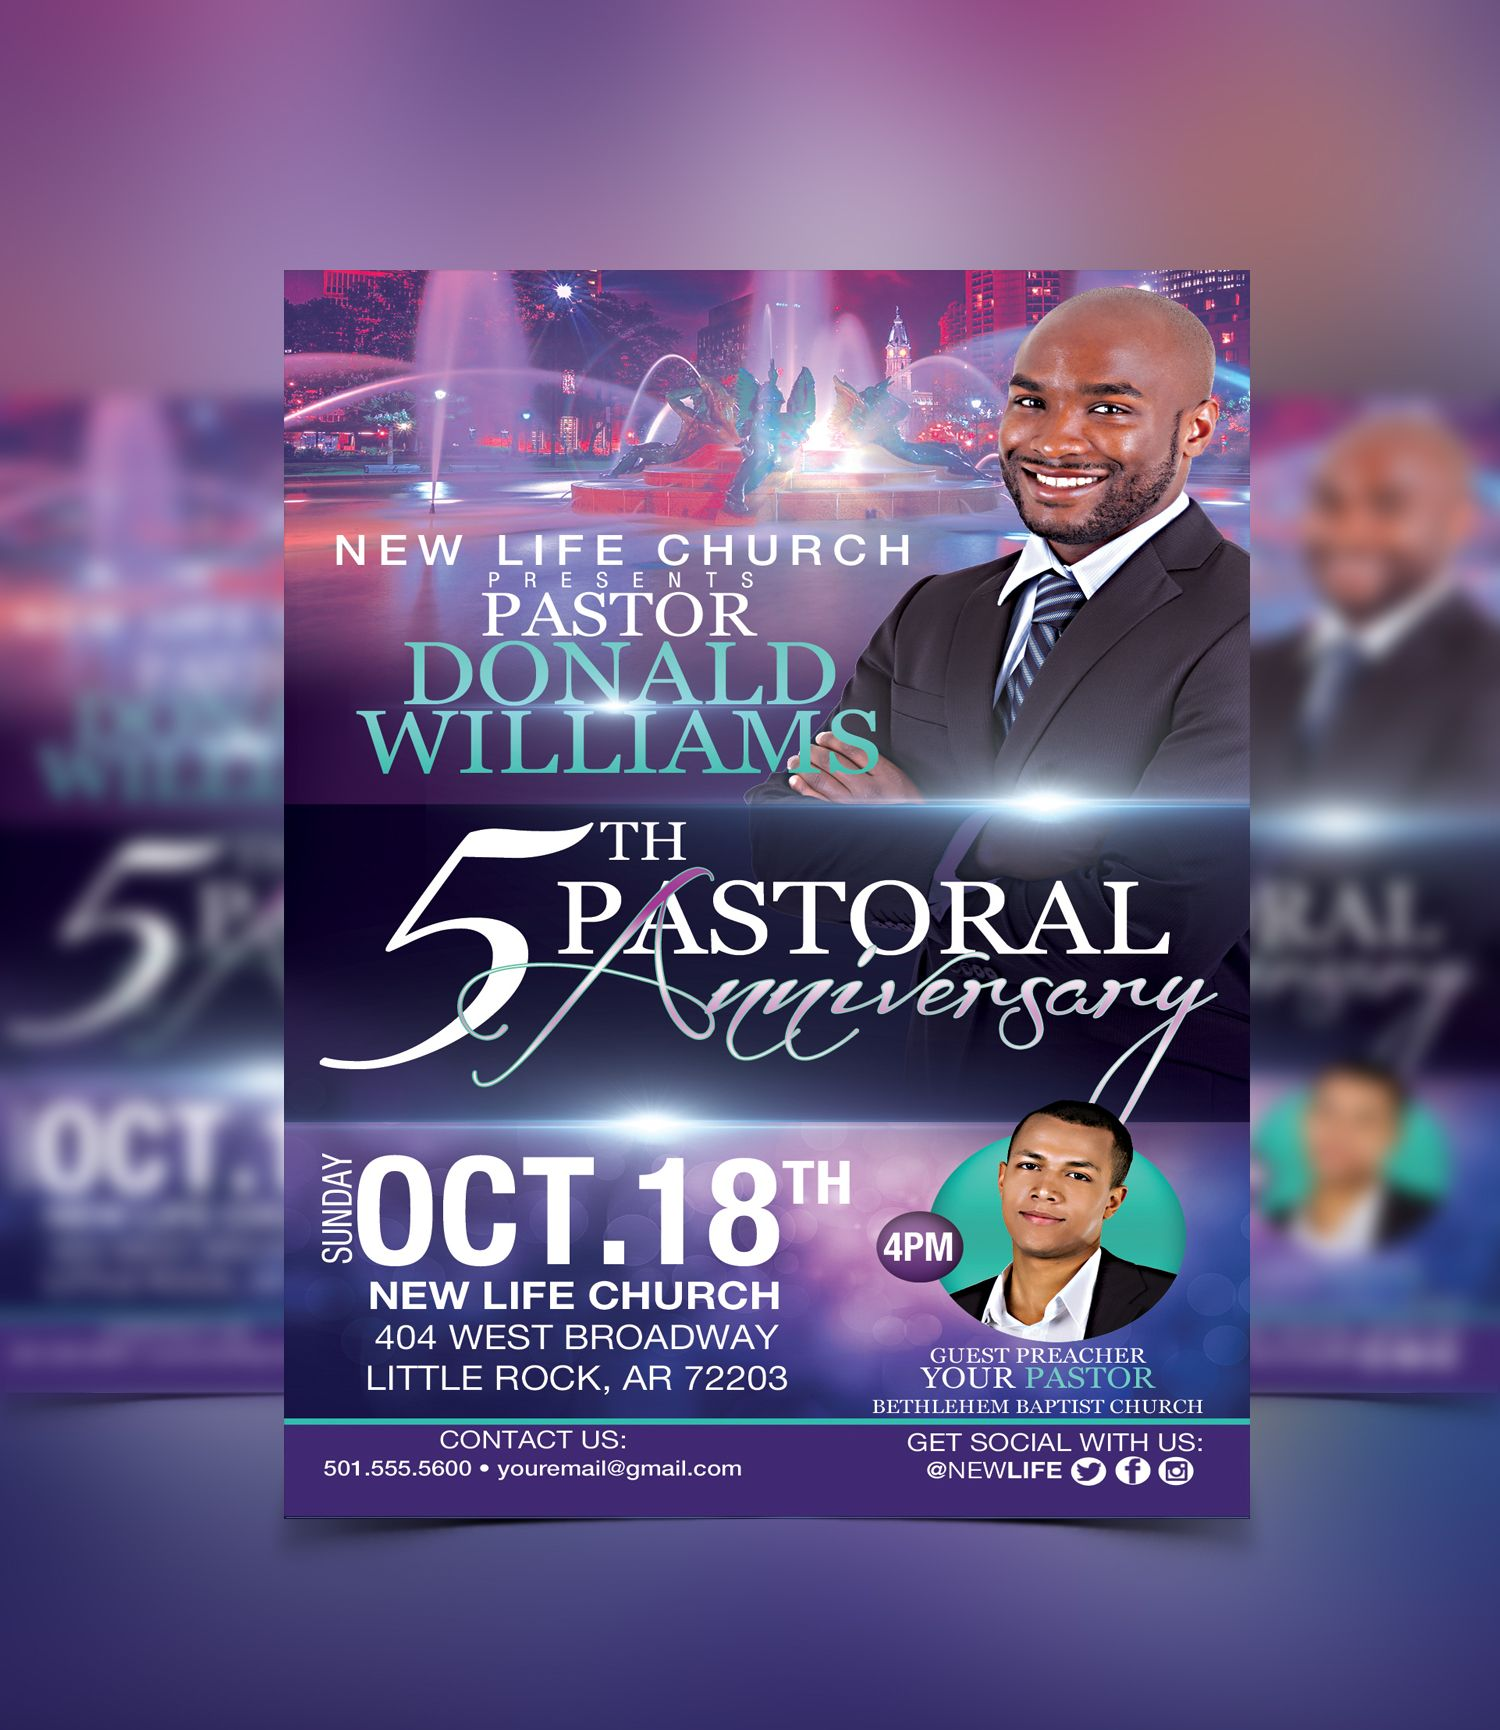 Pastoral Anniversary Flyer Template #flyerthemes